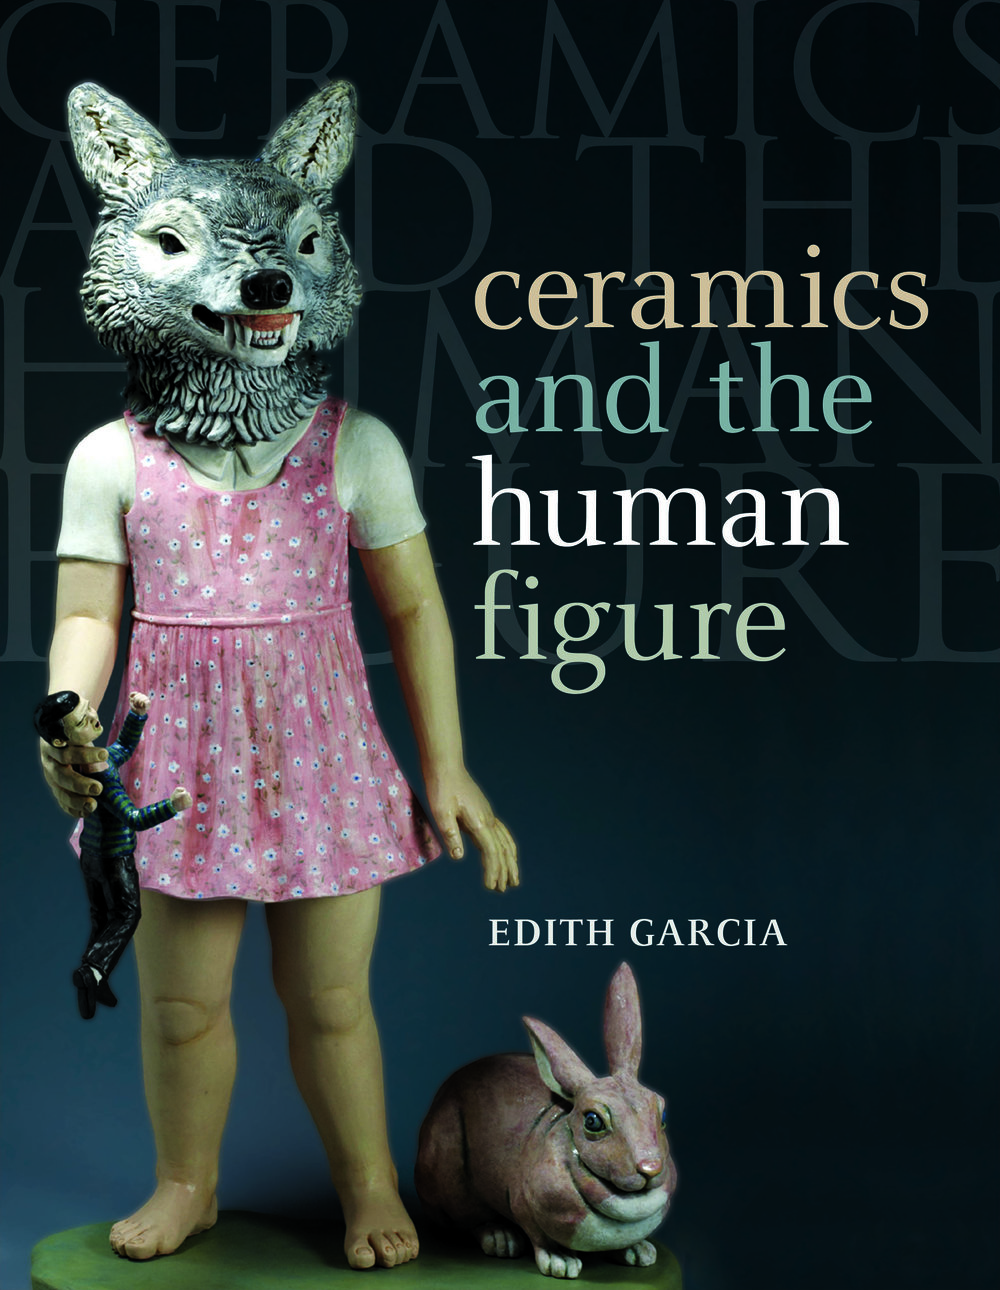 Ceramics and the Human Figure | Available on Amazon - An inside look into 40 international artists and their approach to working with the human figure and clay.Representation of the human form through artistic expression has always existed in clay form, and it continues to evolve today. From exploring the whole figure, through fragmentation to the use of the body as a means to create, artists today are working with clay and the human form in very unconventional ways across the globe. Contemporary artists have learned to play with the possibilities of materials and form more so than ever before, with digital technologies enabling and enhancing the creative process. This publication features works by key ceramic artists that work within the realm of the human form, showcasing and discussing individual artists with practices within the field of installation and sculpture as well as those incorporating new technologies. The artists are divided by themes, with each chapter giving a short introduction, and then going on to display the work and ideas of each, showing the large variety of work being made today. A chapter is also included on making methods, giving making sequences of the more innovative and challenging methods used by some of these artists. Co-published with A&C Black